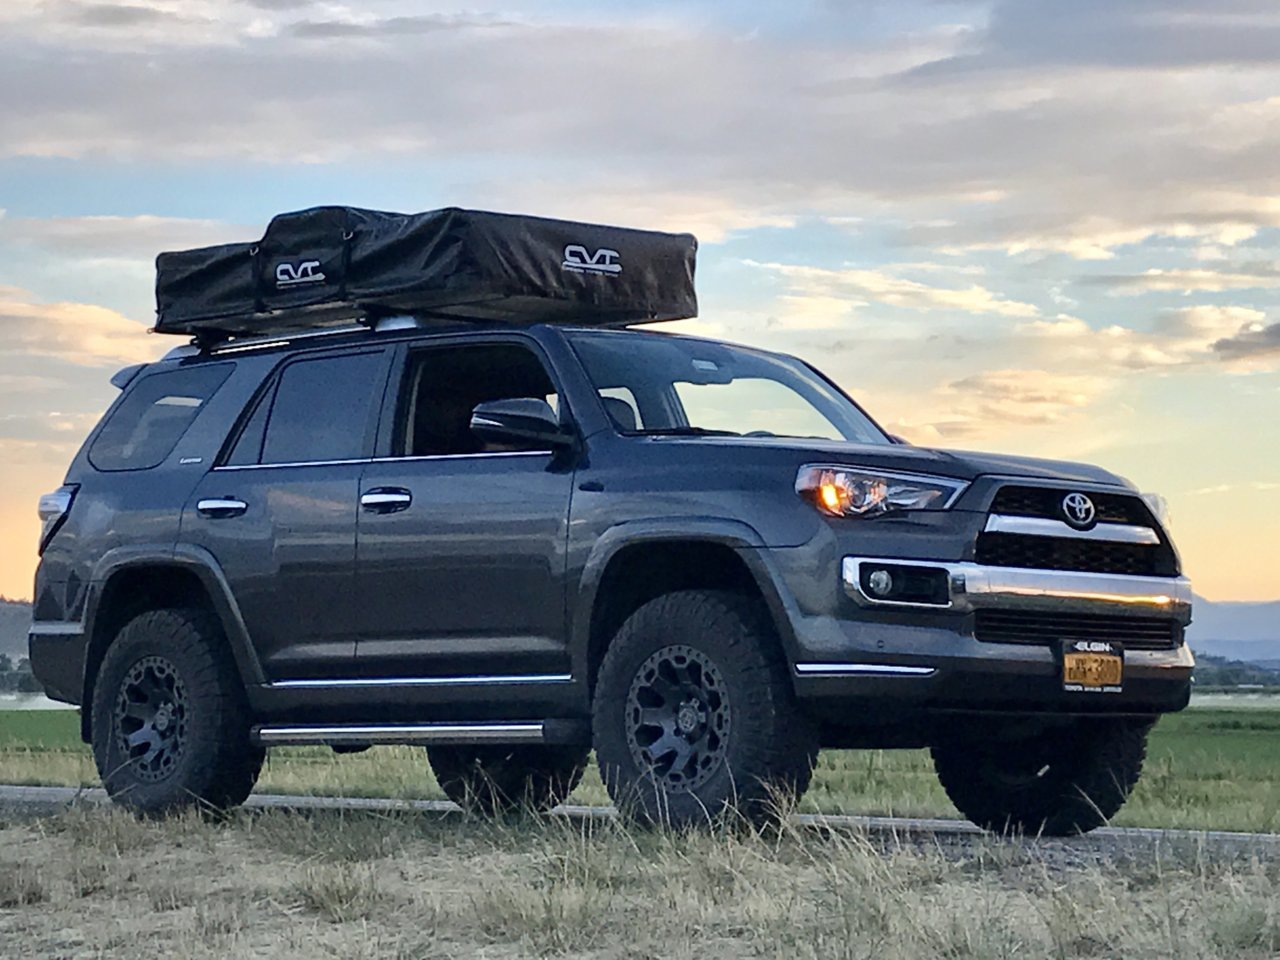 Has Anyone Done A 285 70 17 W 3 Lift On Limited Toyota